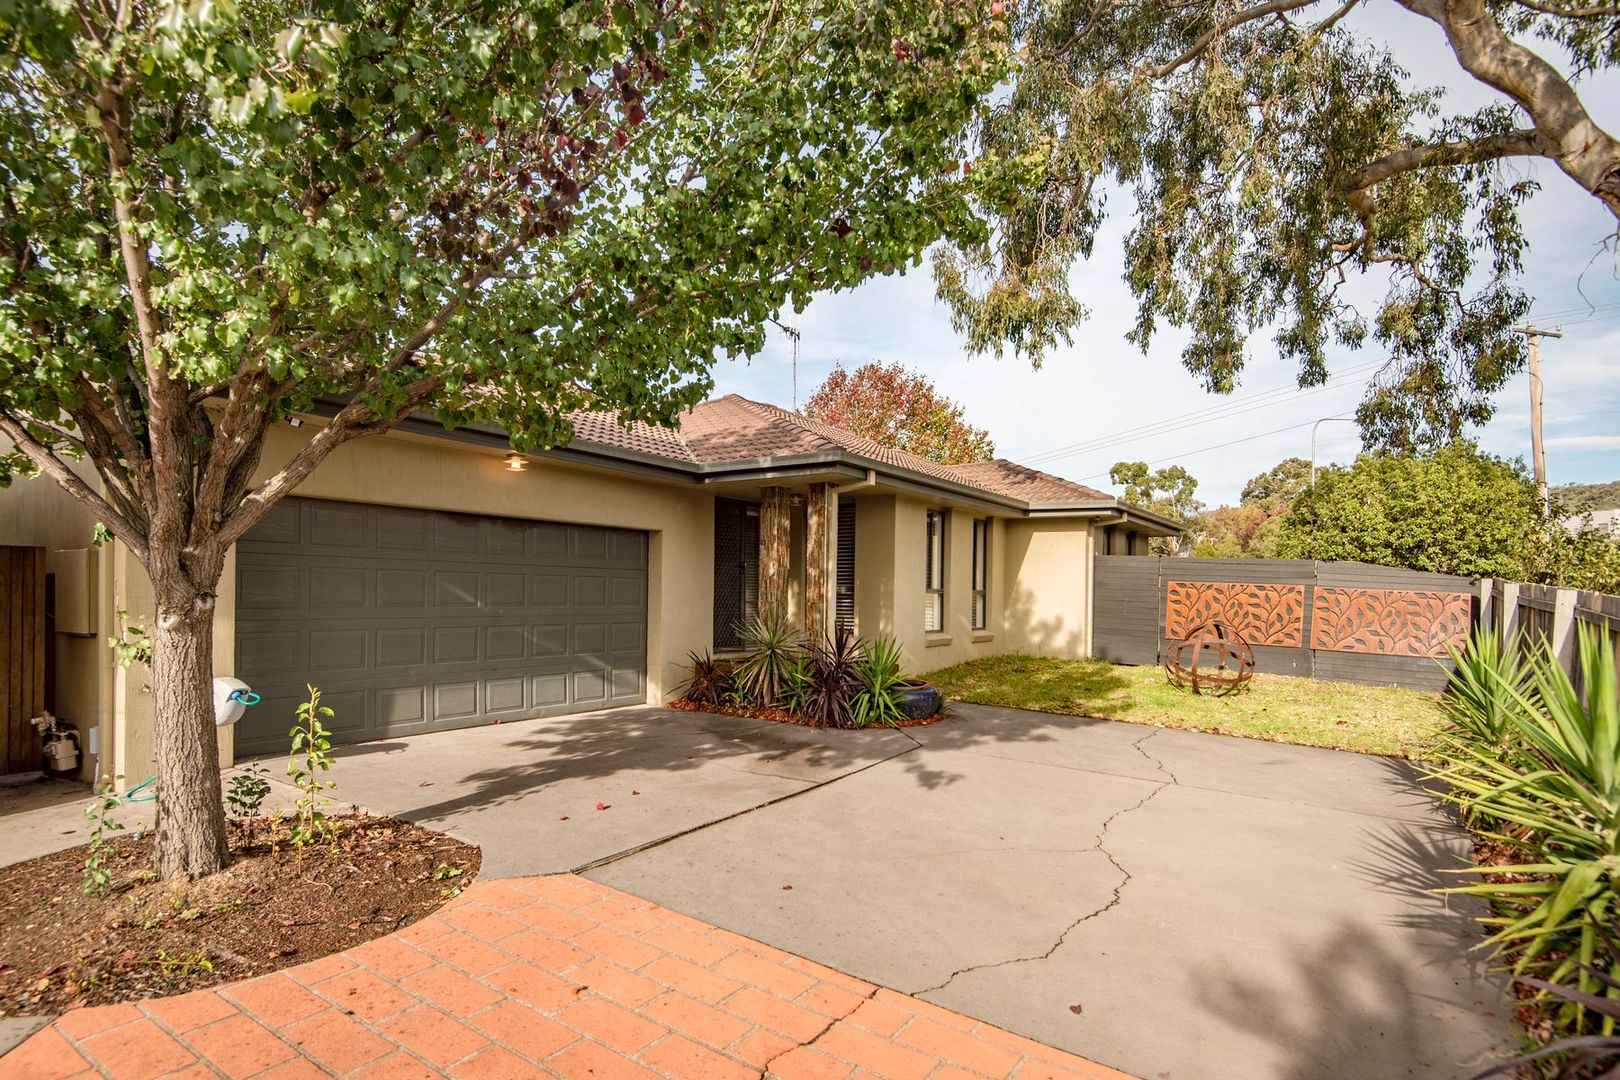 2/9 Coora Place, Jerrabomberra NSW 2619, Image 0